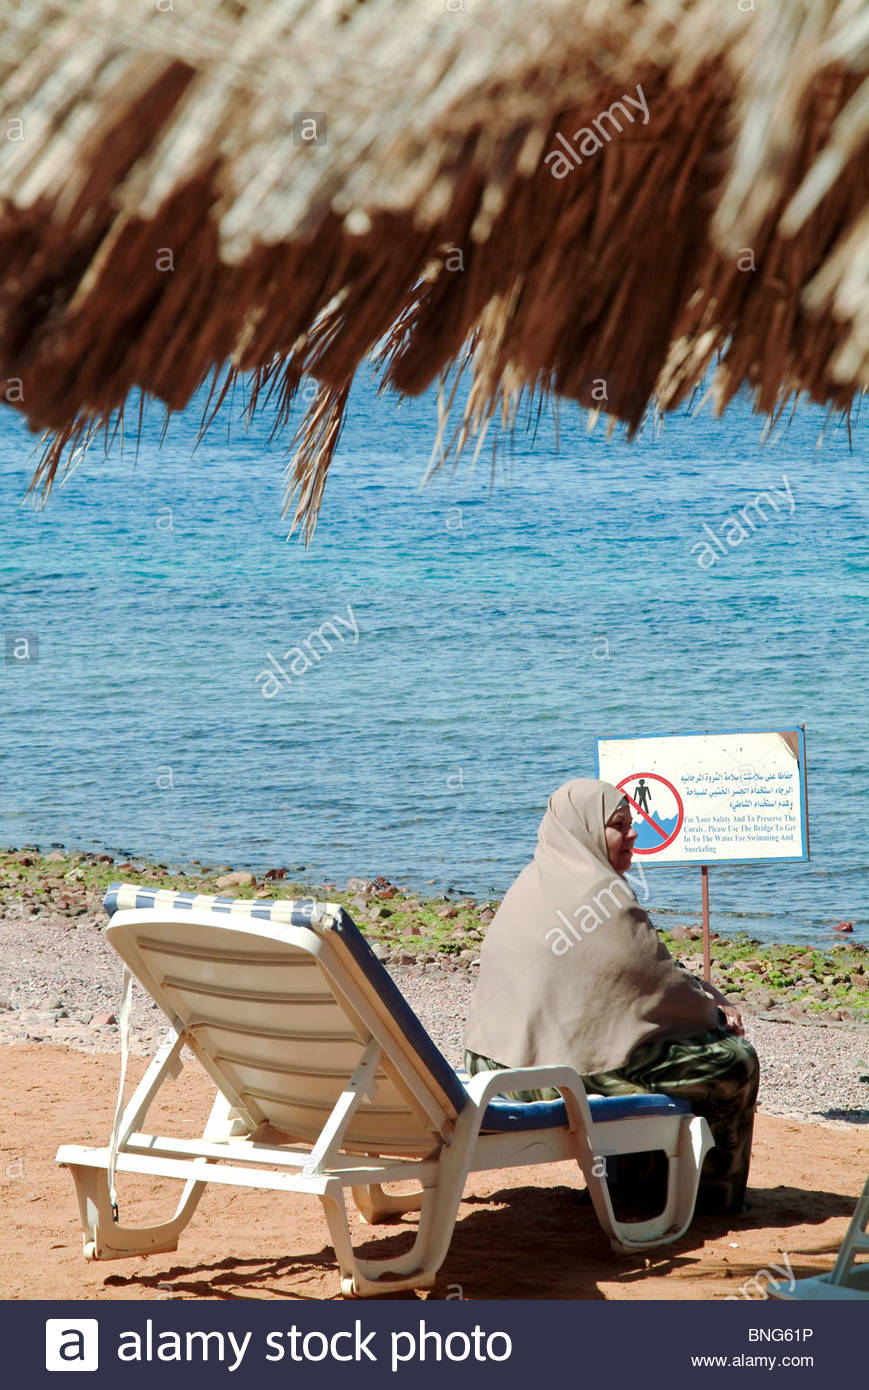 barracuda beach club,aqaba,jordan - Stock Image